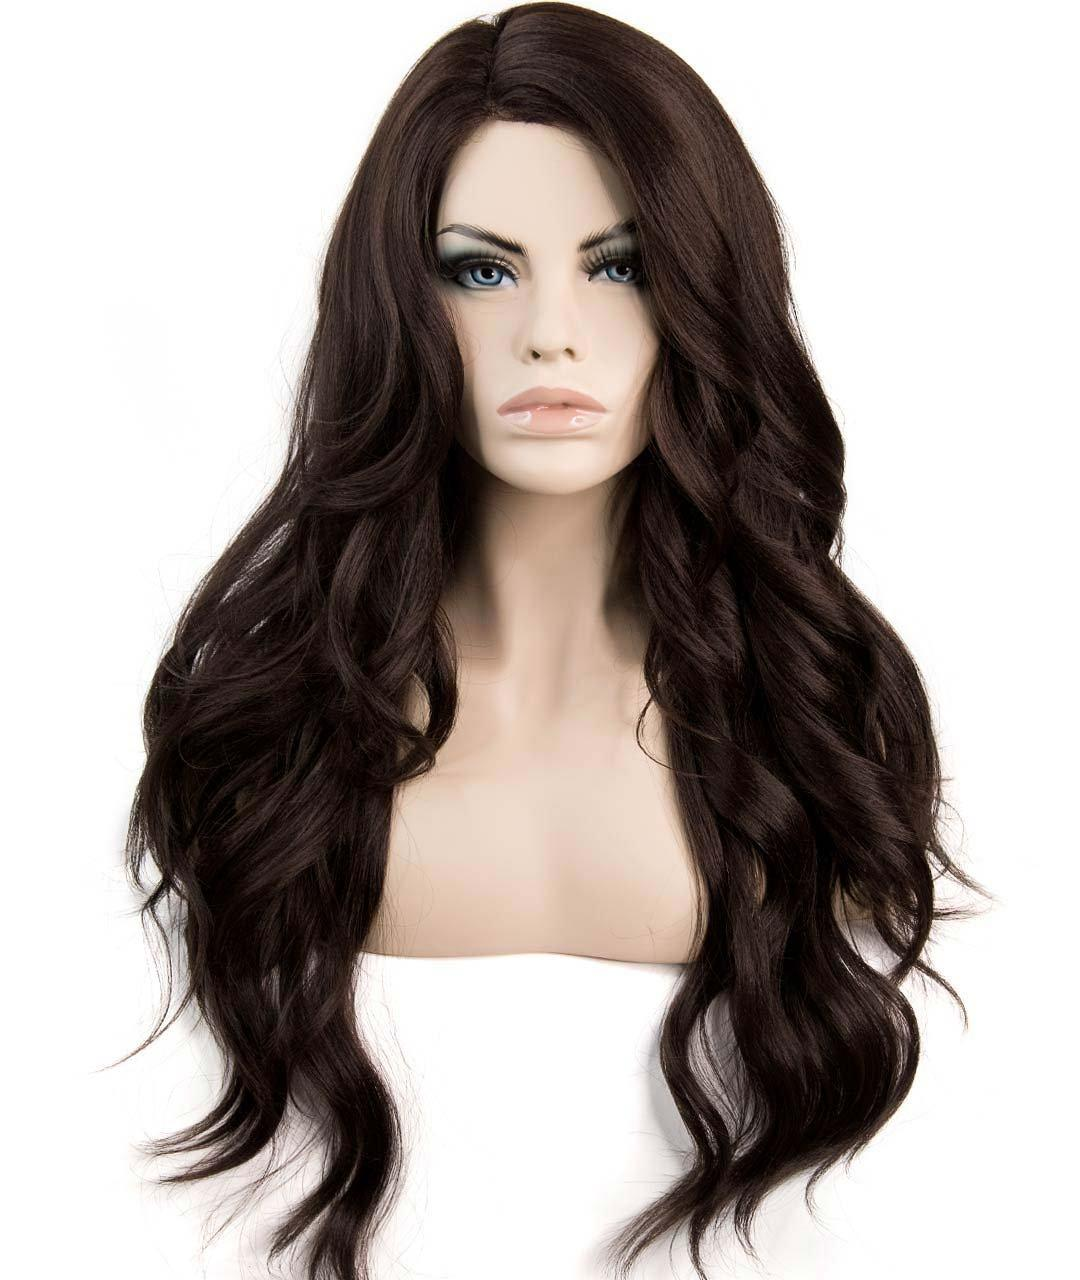 Premium Lace Monofilament Top Long and Wavy Heat Resistant Side Part Synthetic Wig for Women Cosplay Fashion Full Volume 150% Density